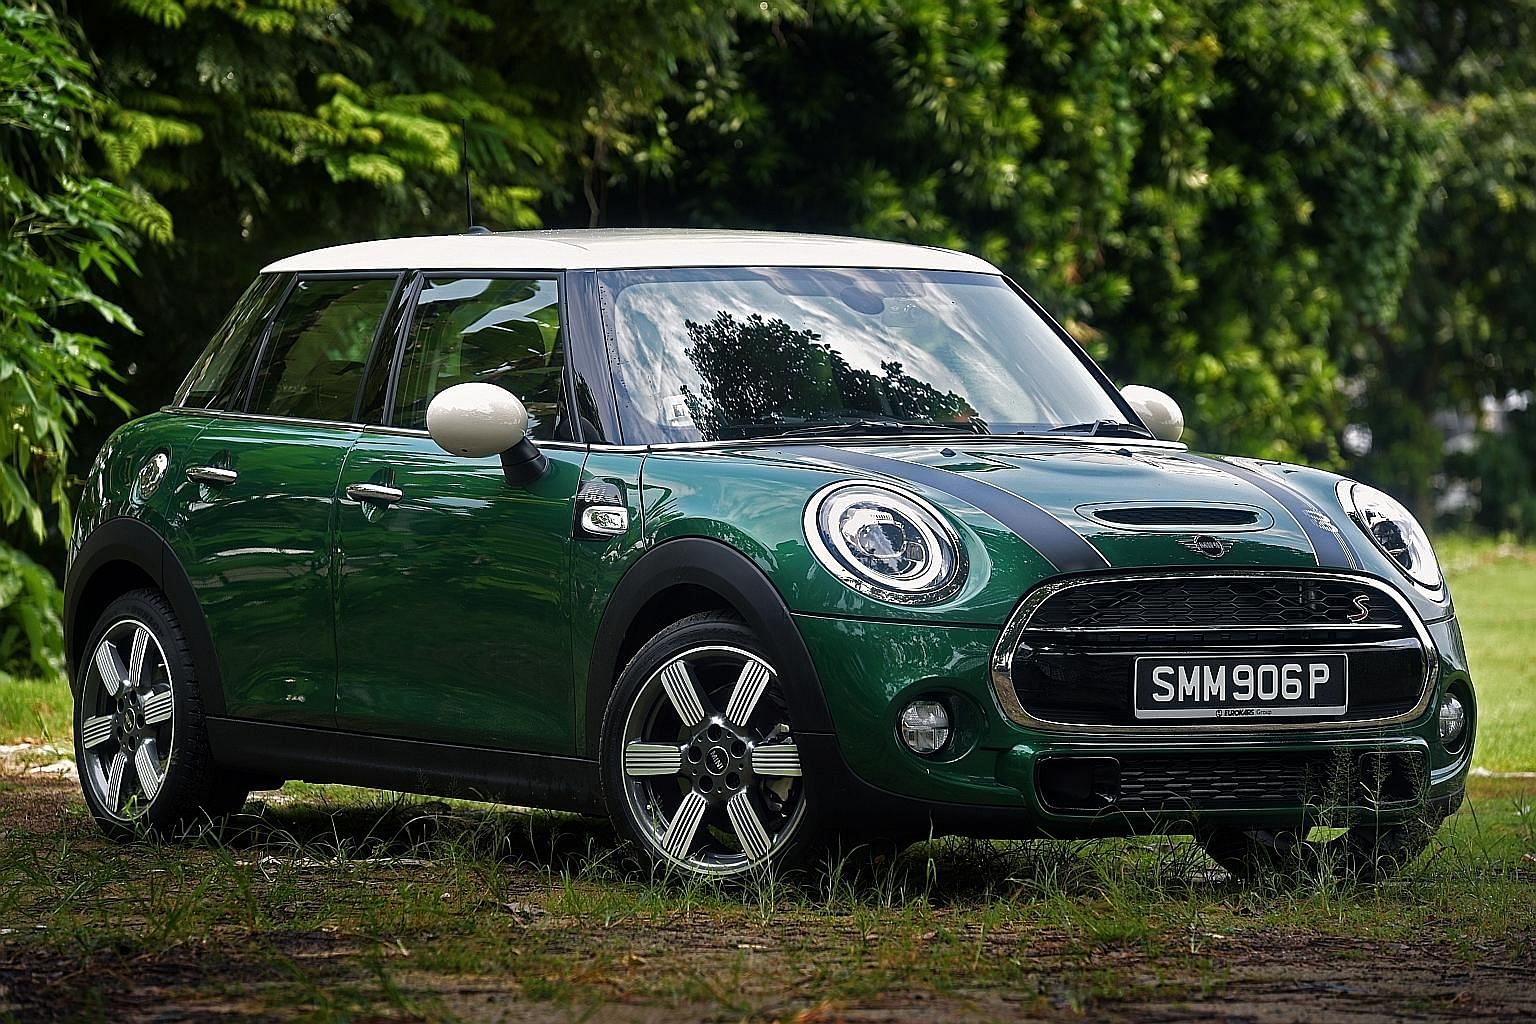 The steering wheel of Mini's 60 Years Edition Cooper S is grippy, helping the car to respond quickly and smoothly to inputs, conveying calmness even at a frantic pace.